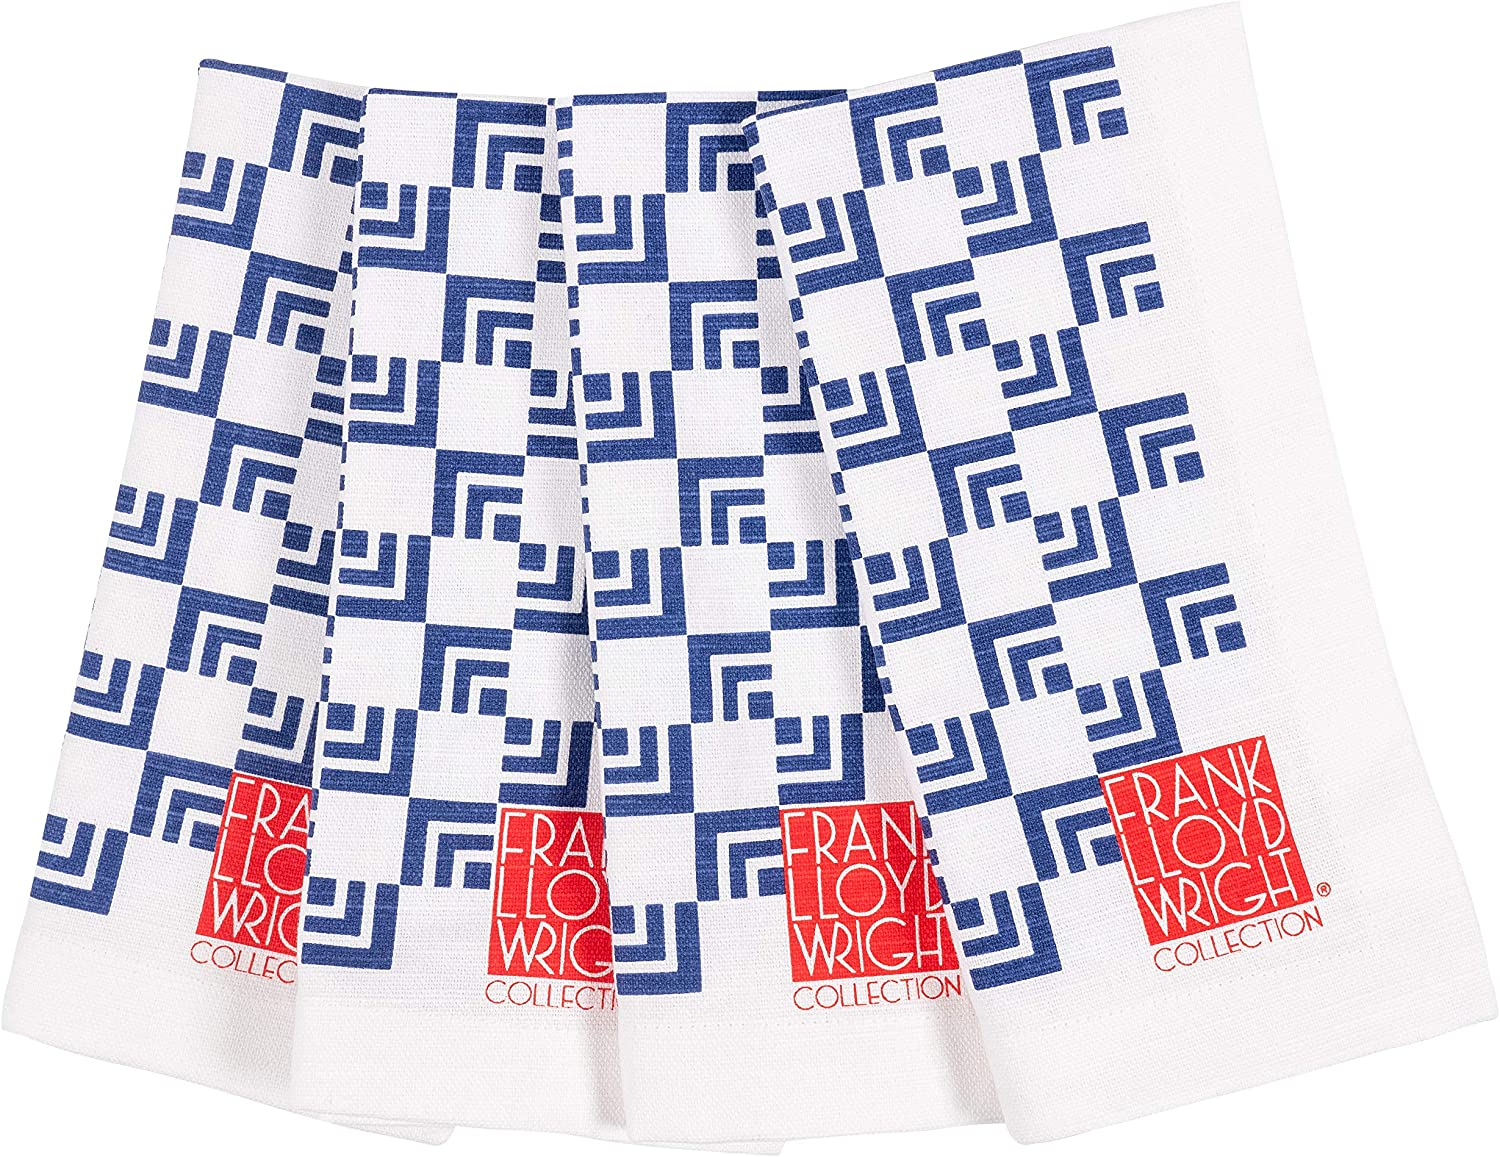 KAF Home Frank Lloyd Wright Printed Dinner Napkin 20 x 20-inch 100-Percent Cotton Set of 4 (Nested Squares)